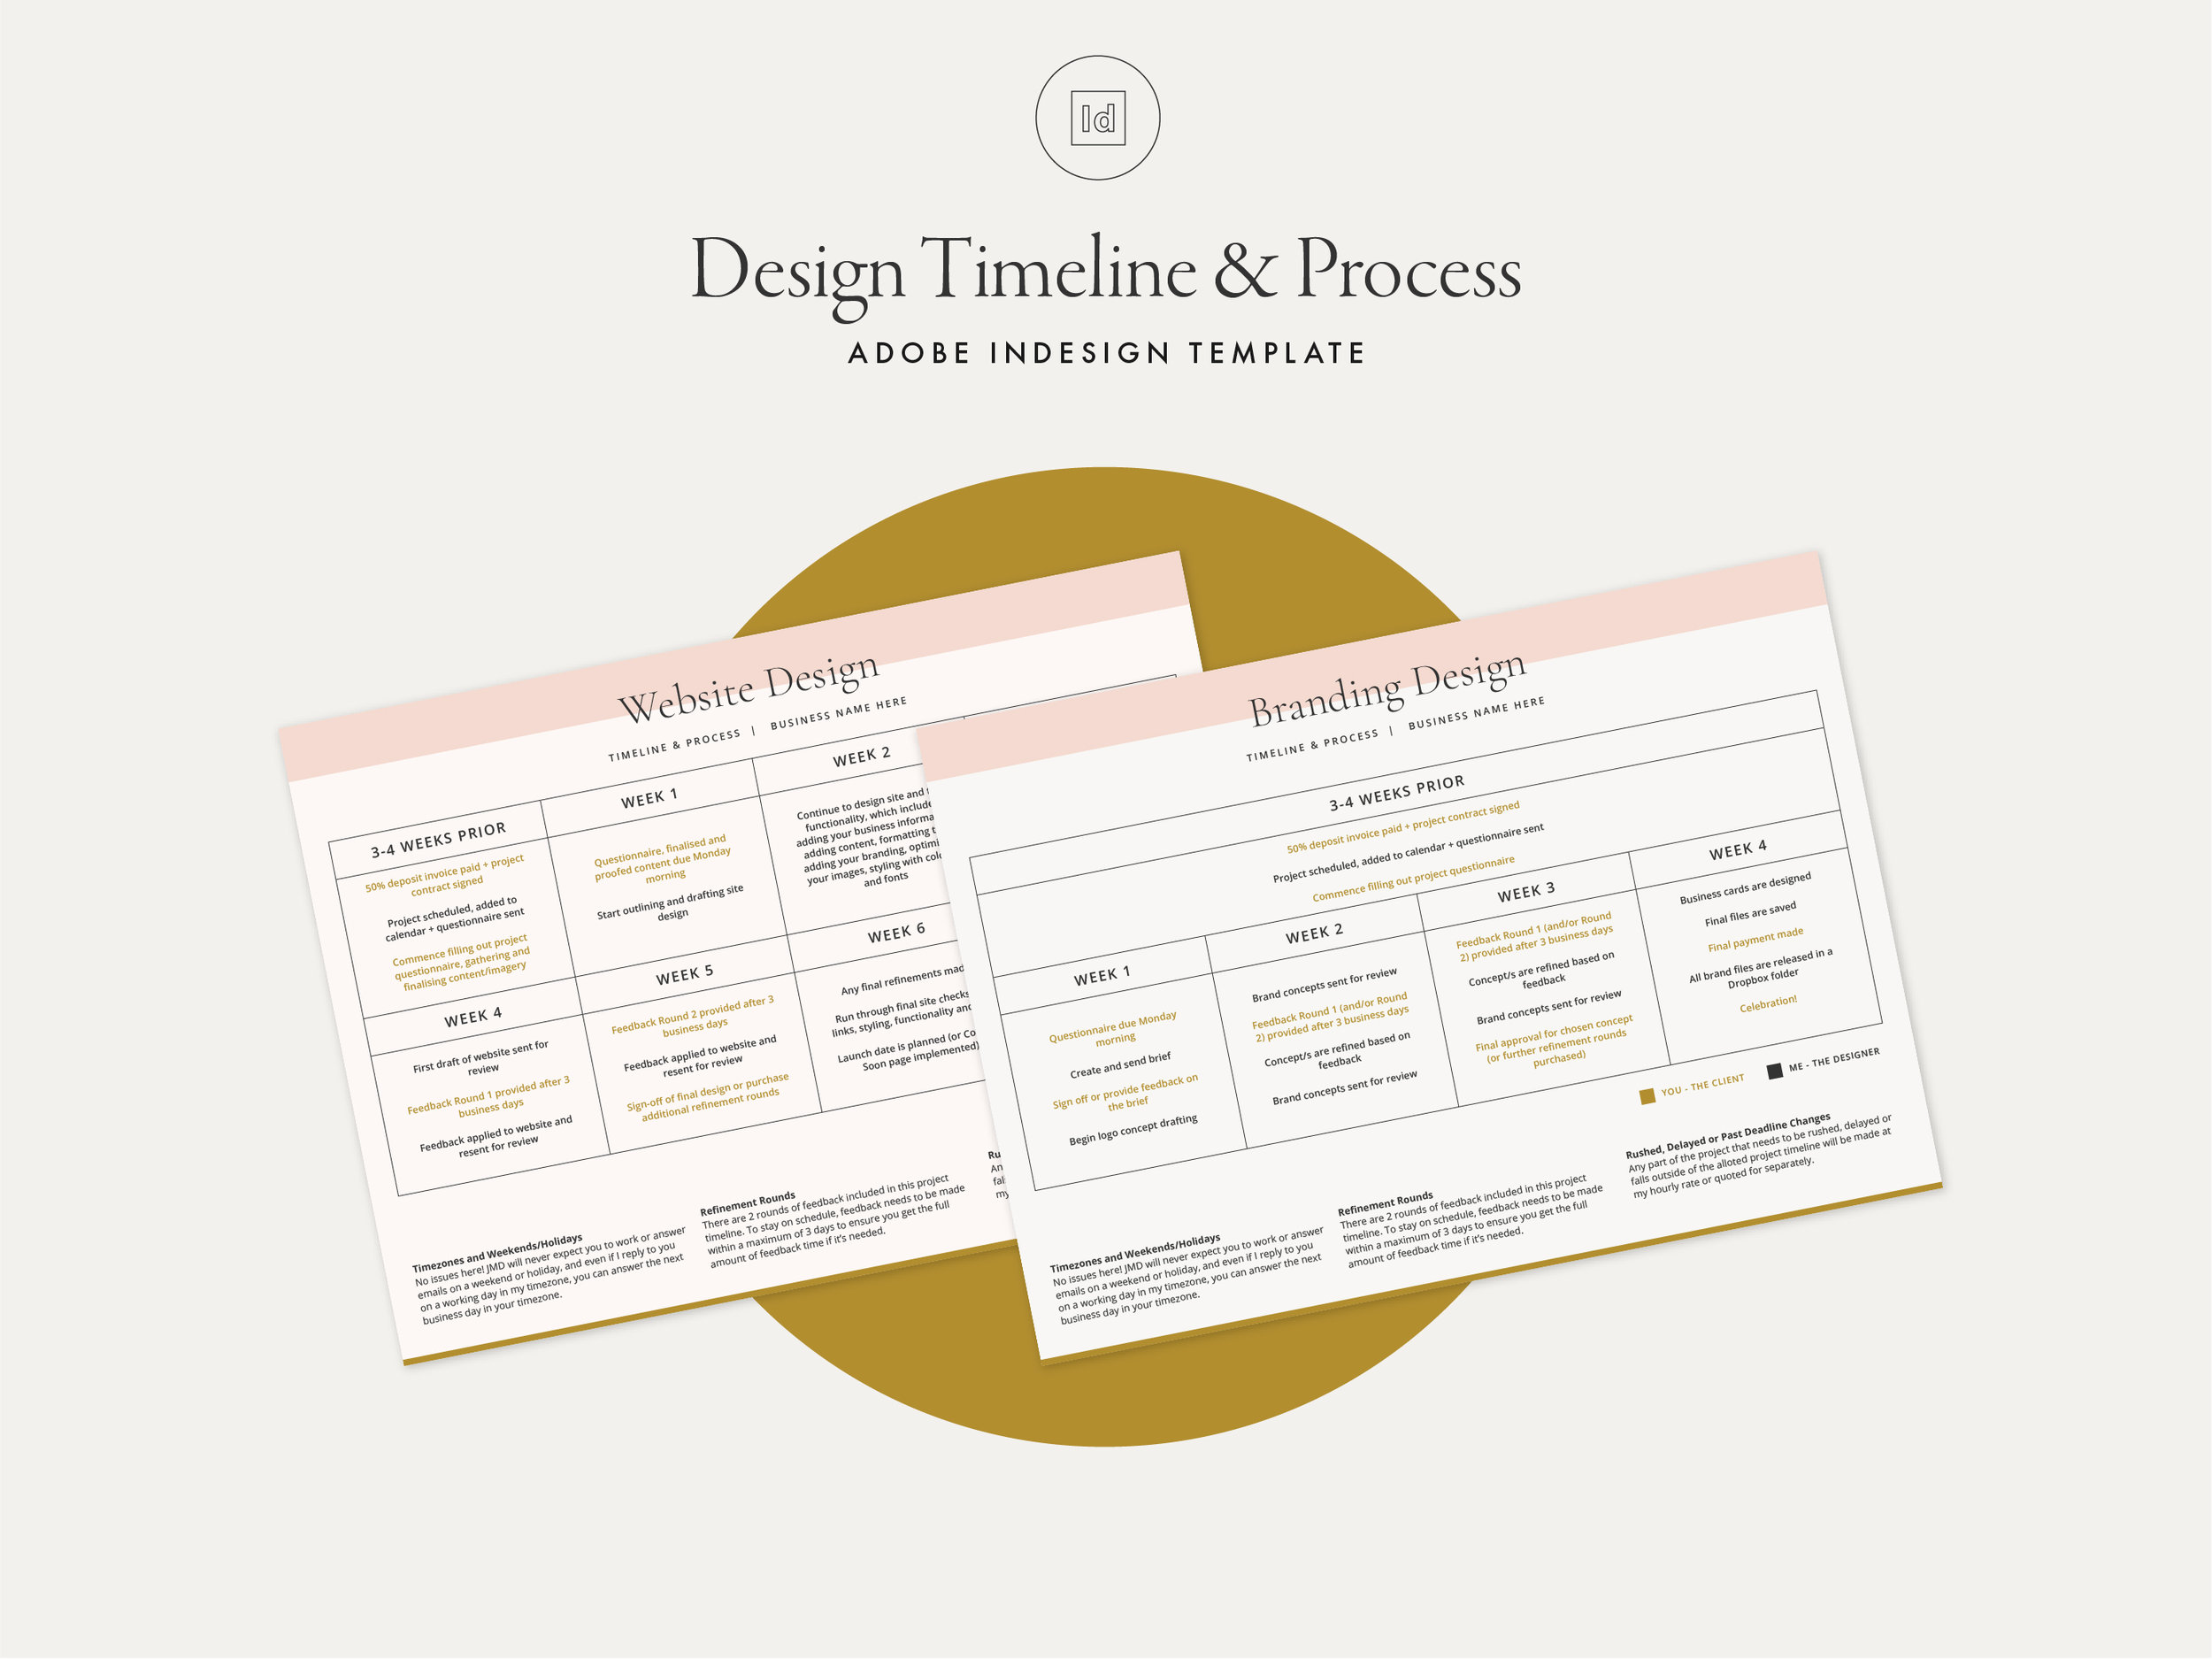 Process & Timeline Indesign Template - 2 x editable Indesign templates that can be customised to your own branding and style!